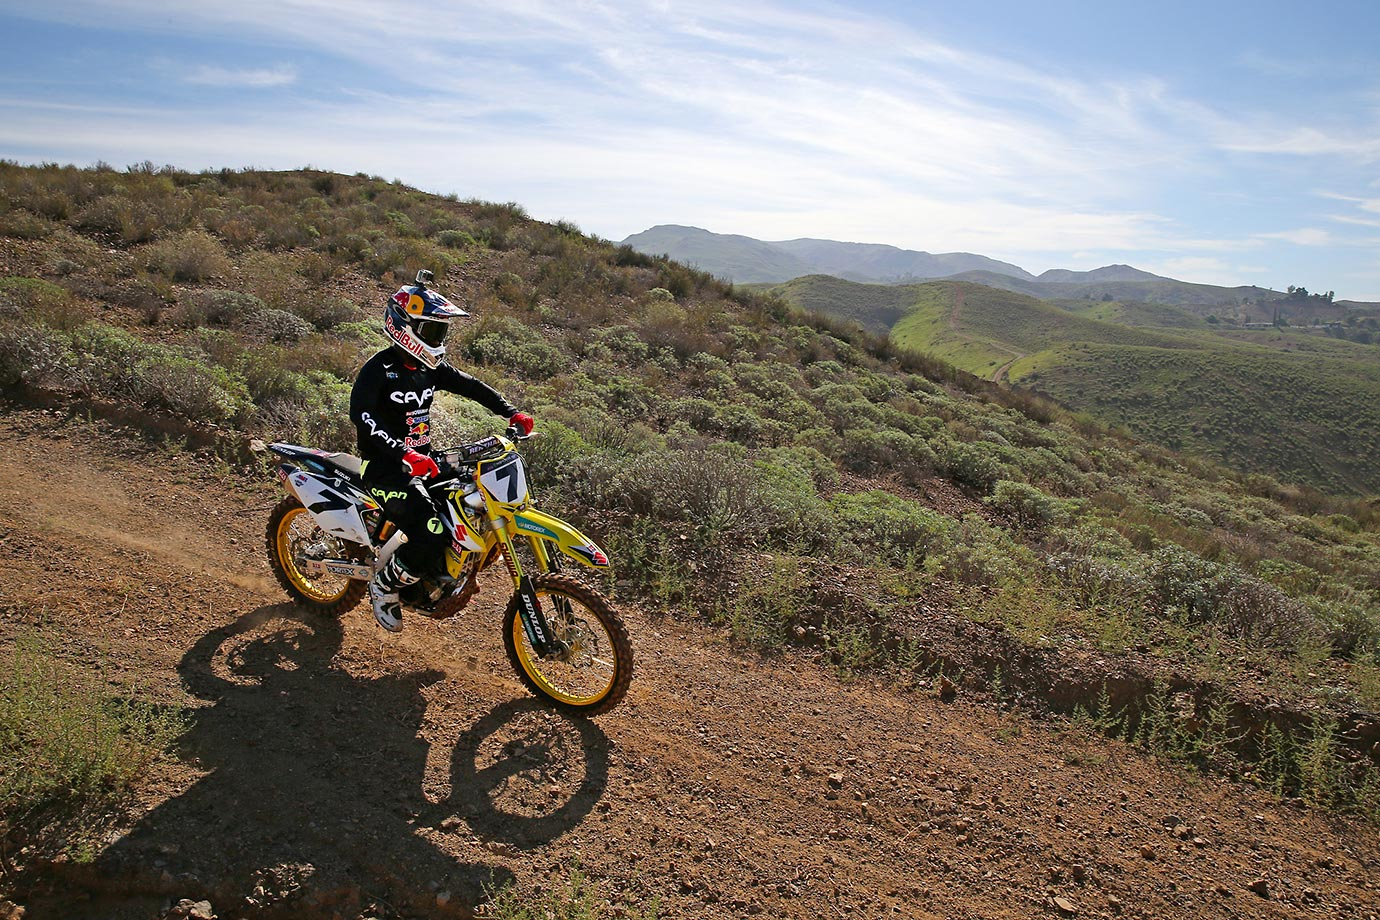 James Stewart rides down the moutain side in southern California.